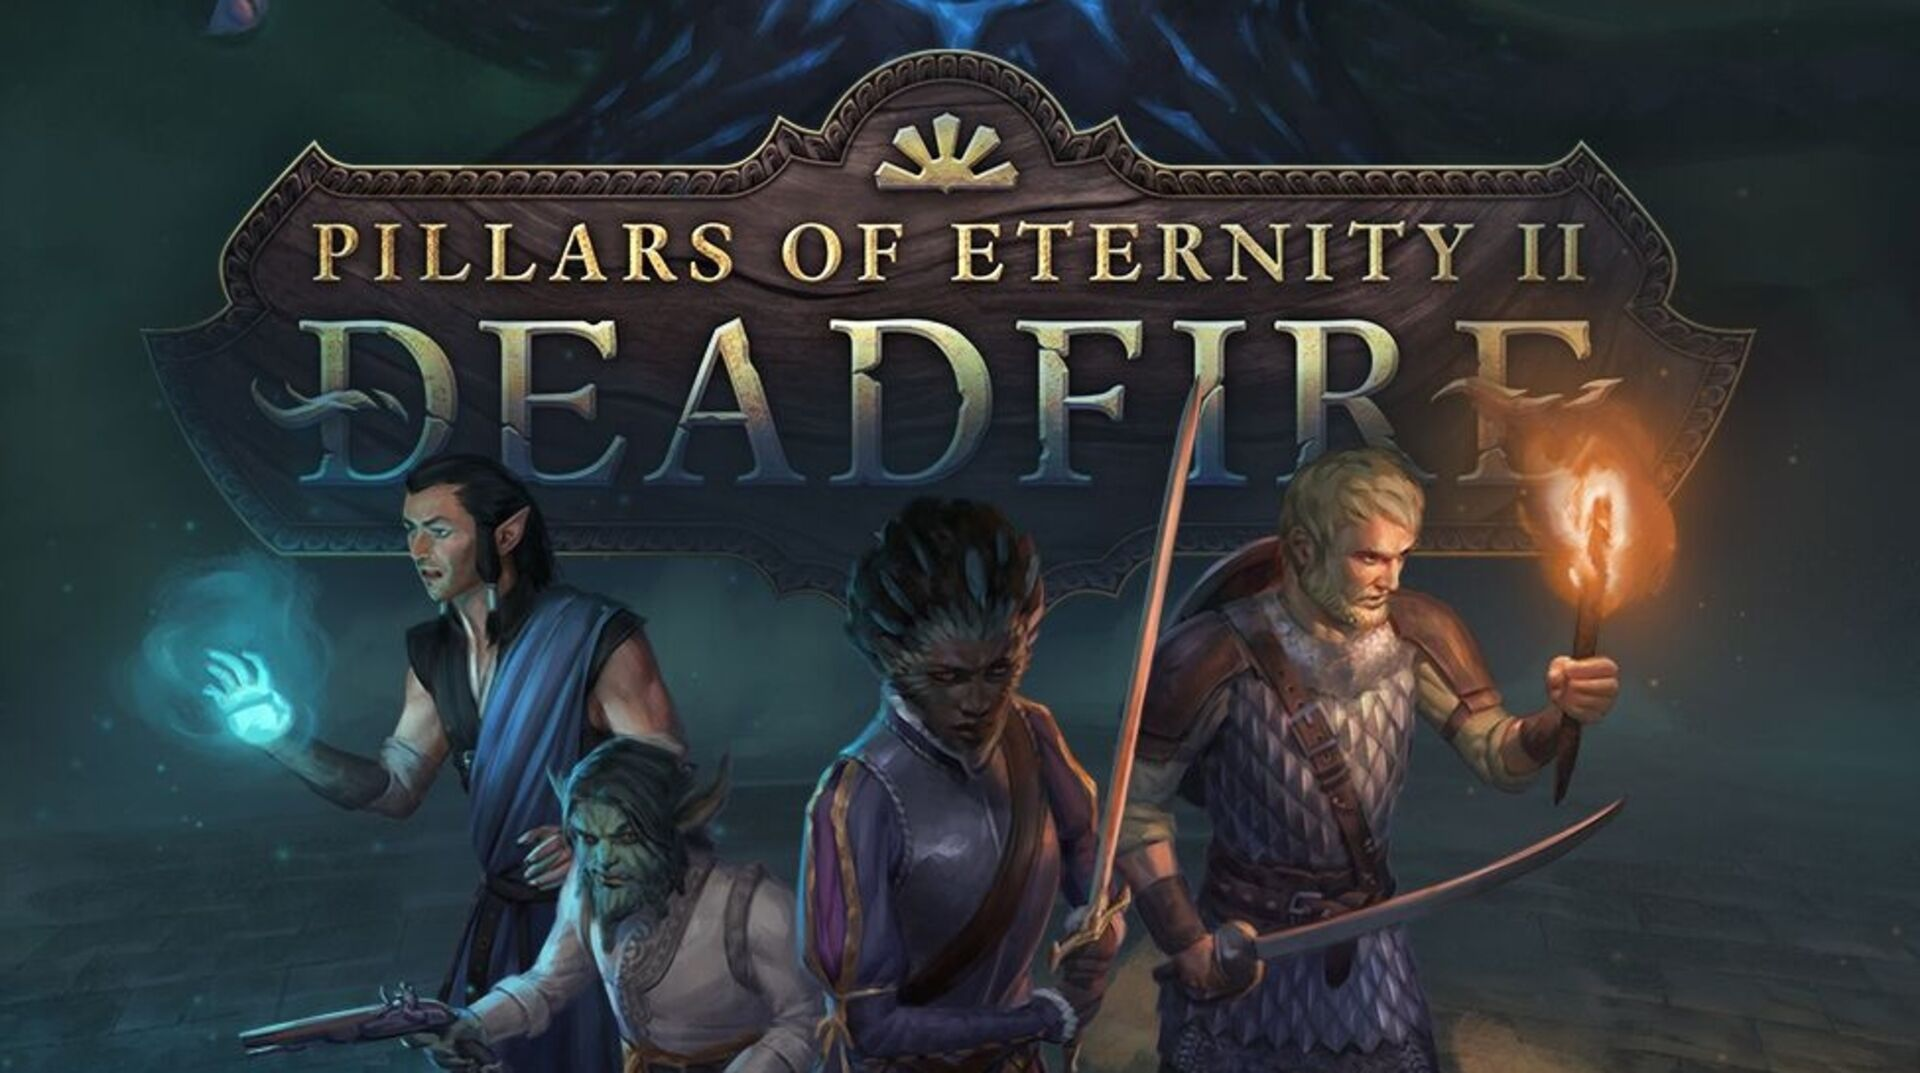 Third and final paid expansion for Pillars of Eternity 2